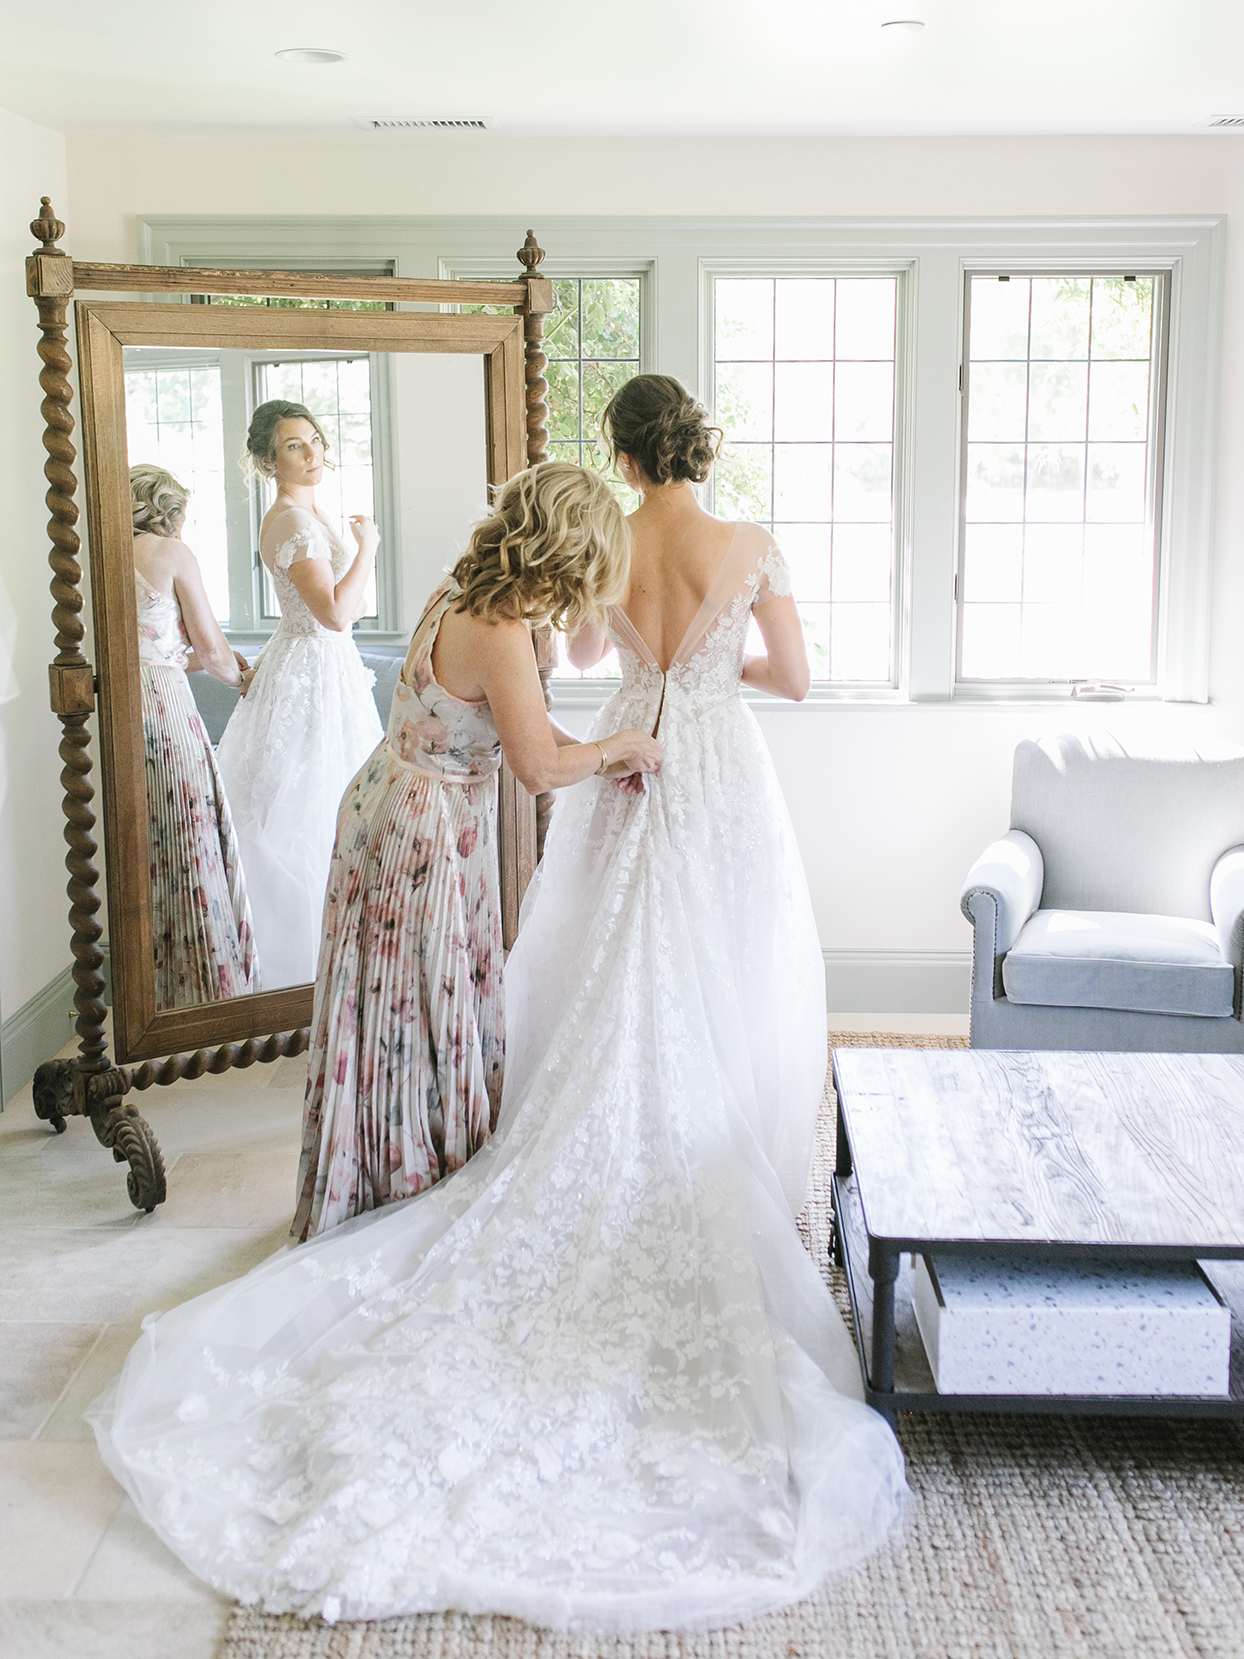 bride helping bride get ready in front of mirror